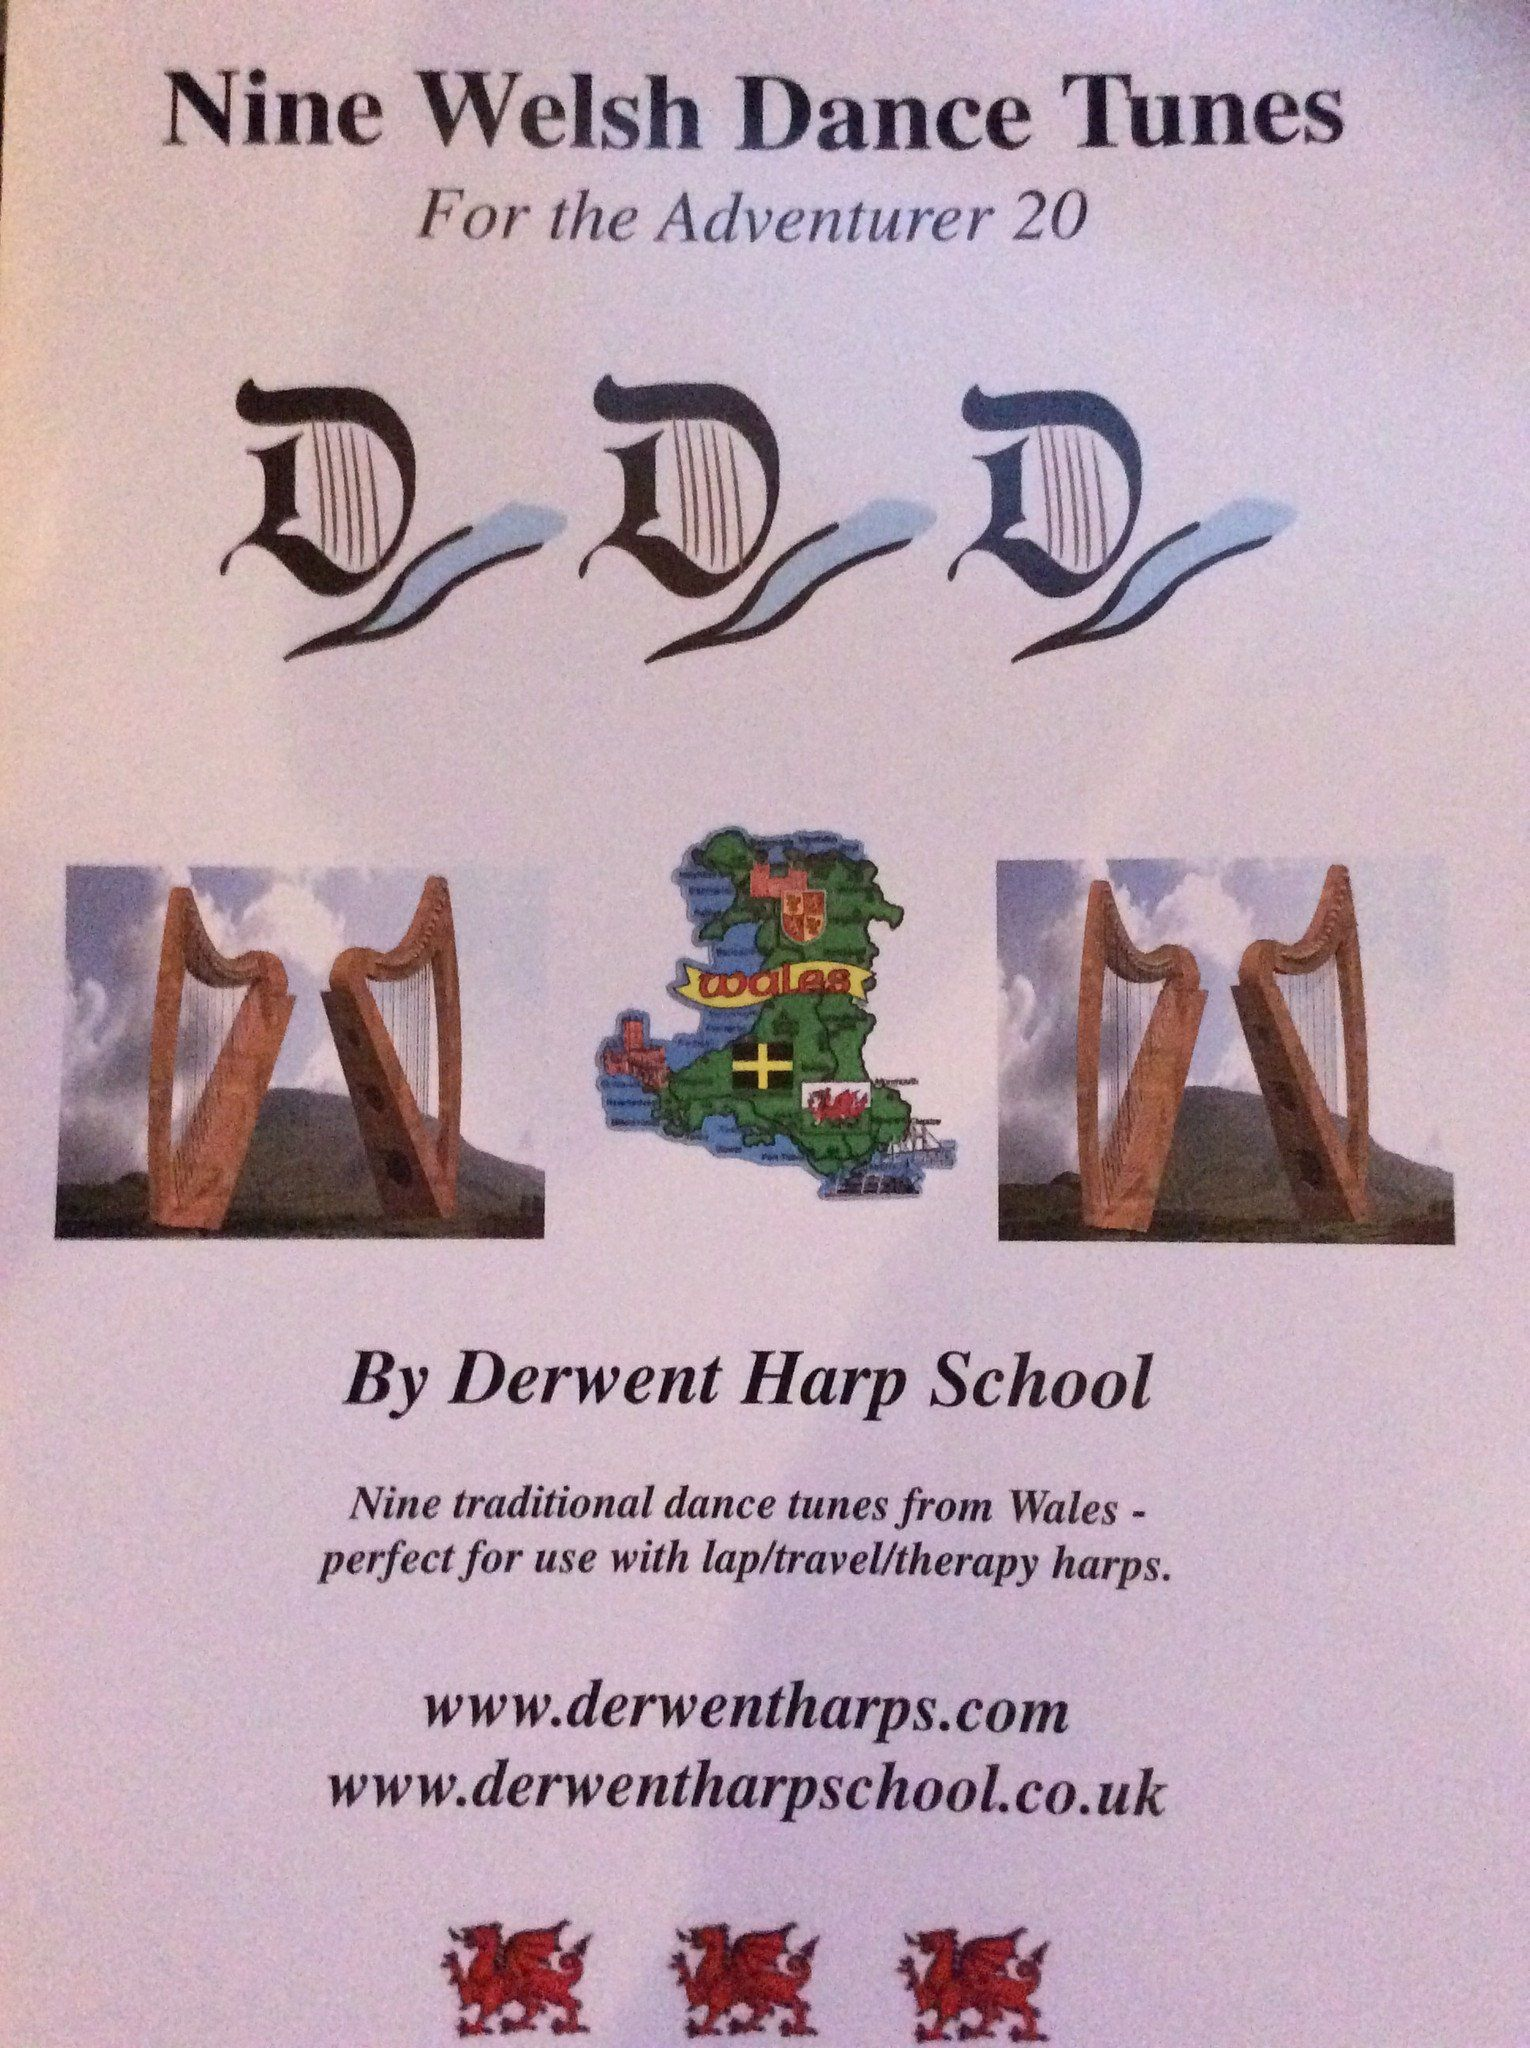 Nine Welsh Dance Tunes for the Adventurer 20  - by Derwent Harp School